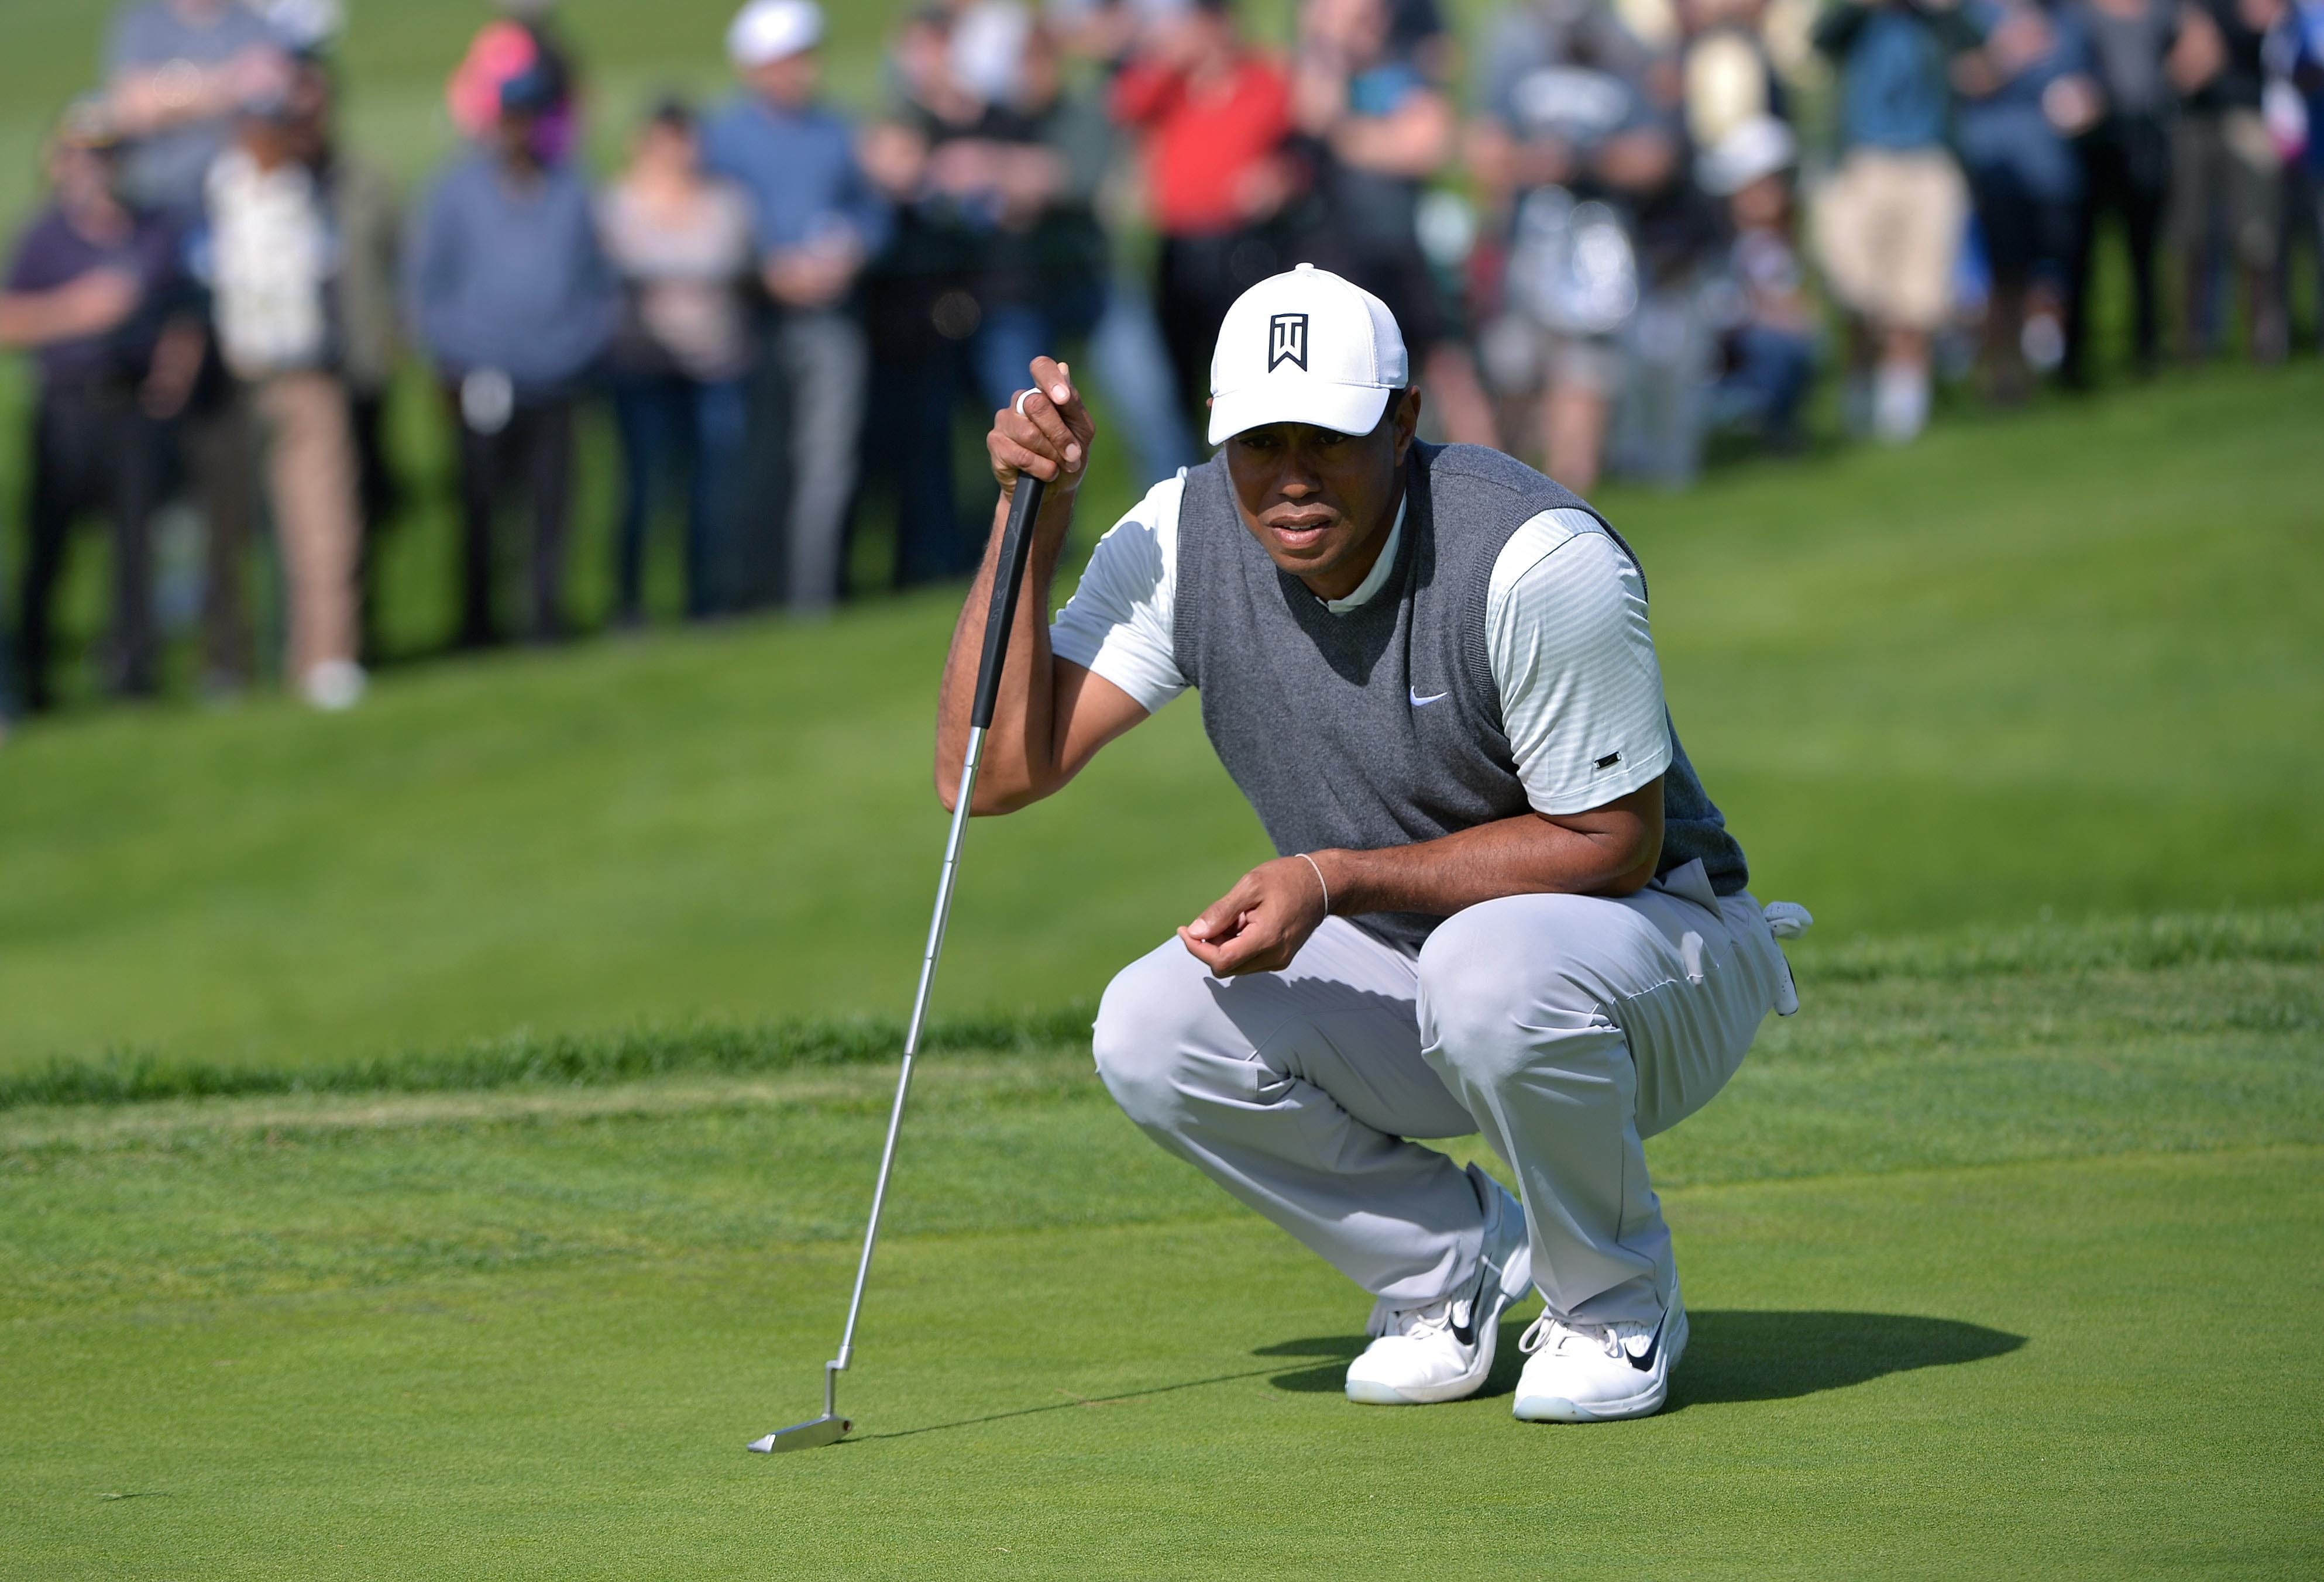 Tiger Woods shot a 2-under 70 in the opening round of the Farmers Insurance Open.